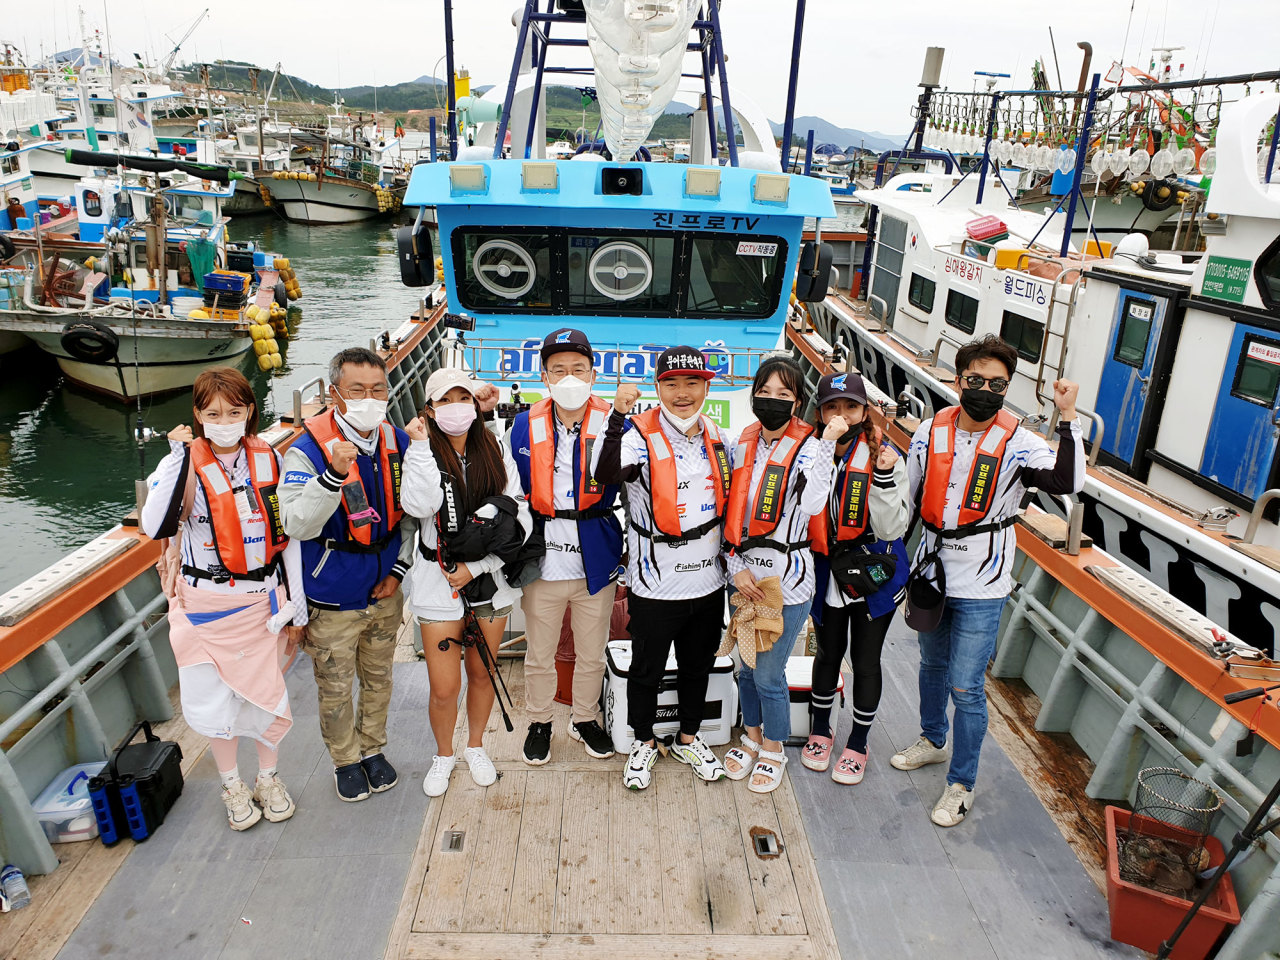 Afreeca TV CEO Seo Soo-kiel (fourth from left) celebrates the launch of the company's fishing boat with streamers and professional fishermen at Kukdong harbor in Yeosu, South Jeolla Province, on Wednesday. (Afreeca TV)